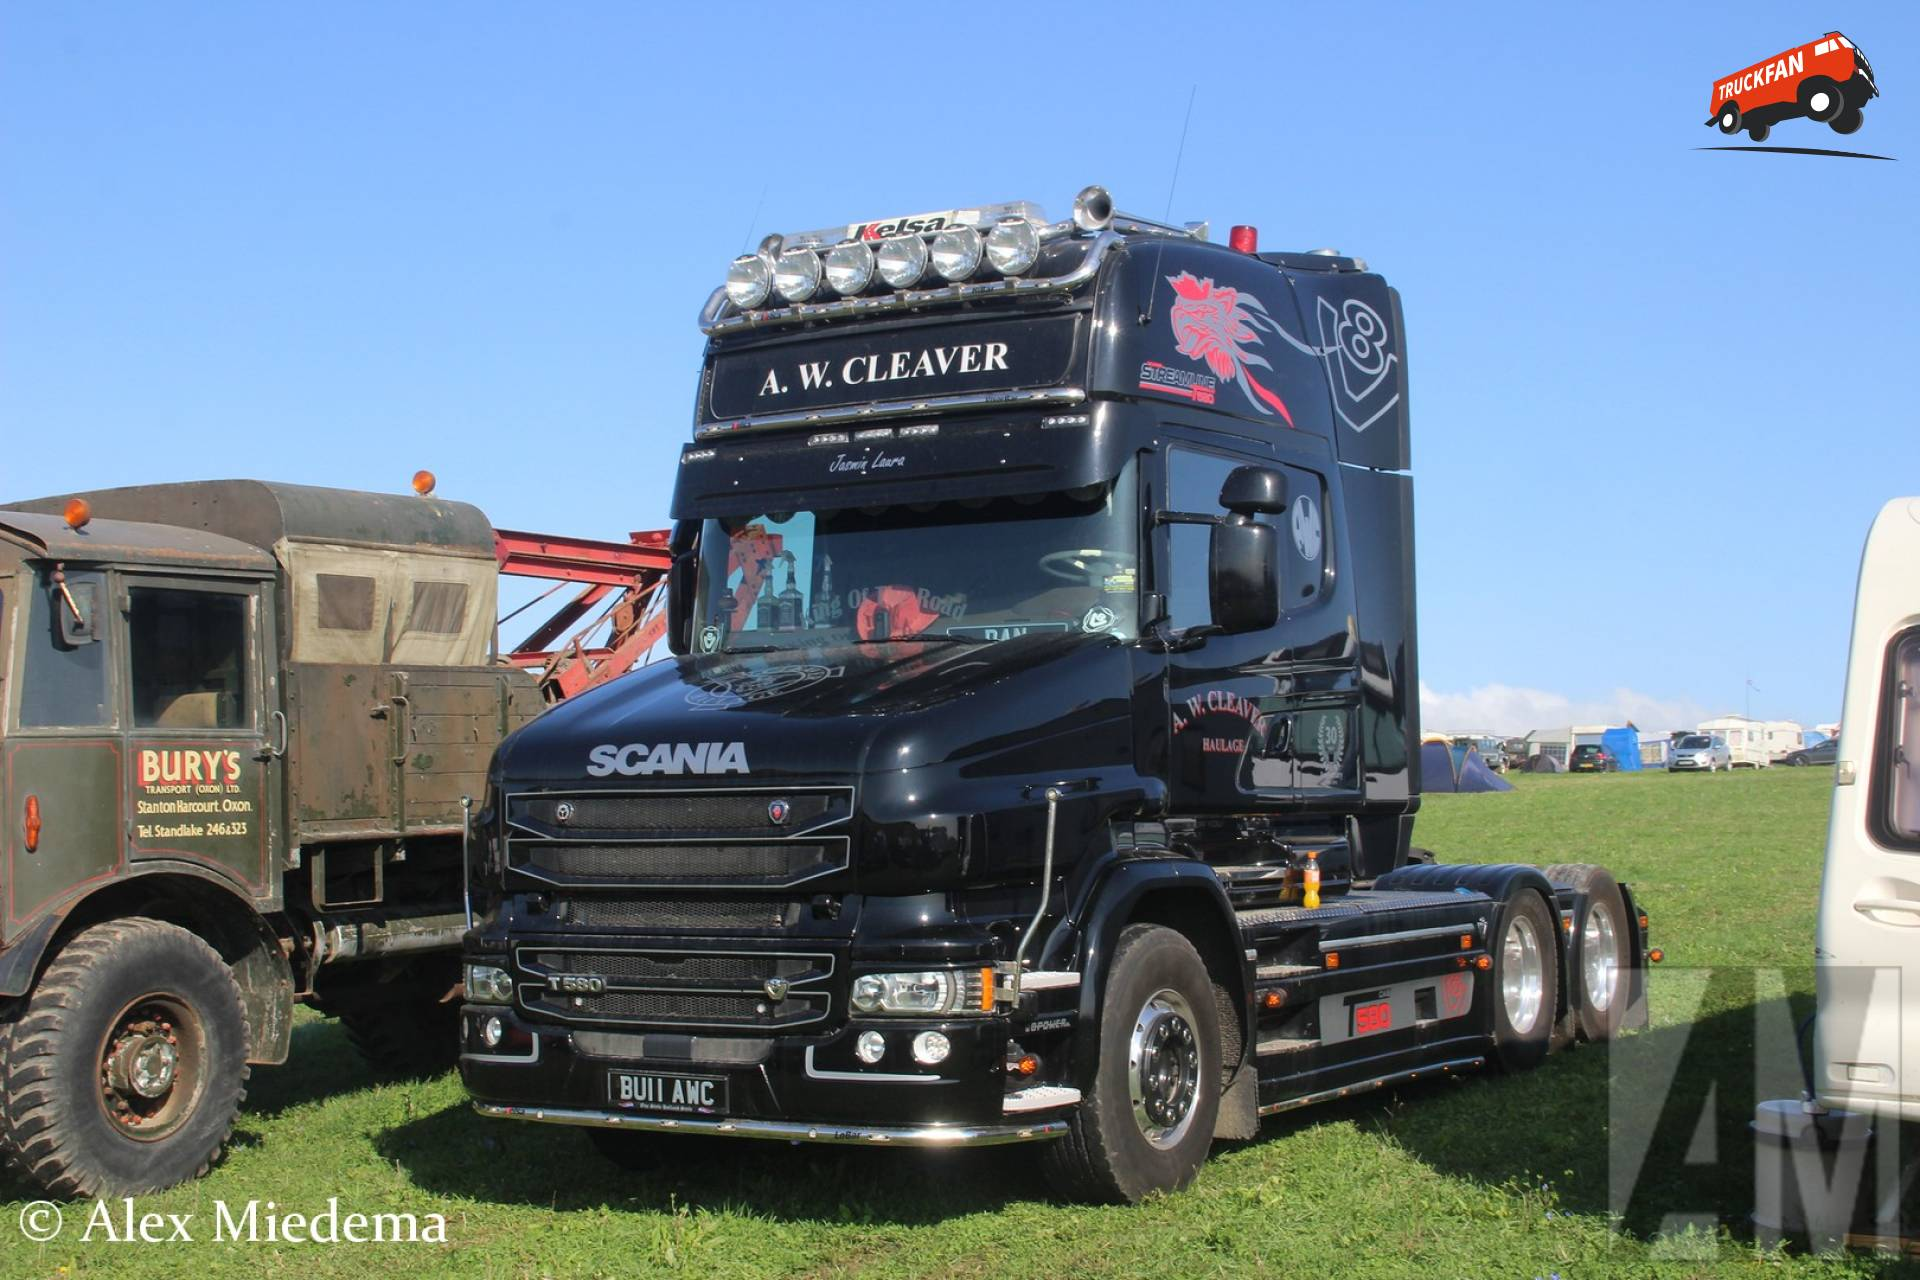 Scania T580